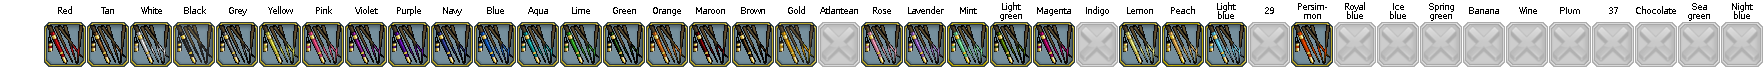 Colors-trinket-Poison darts.png